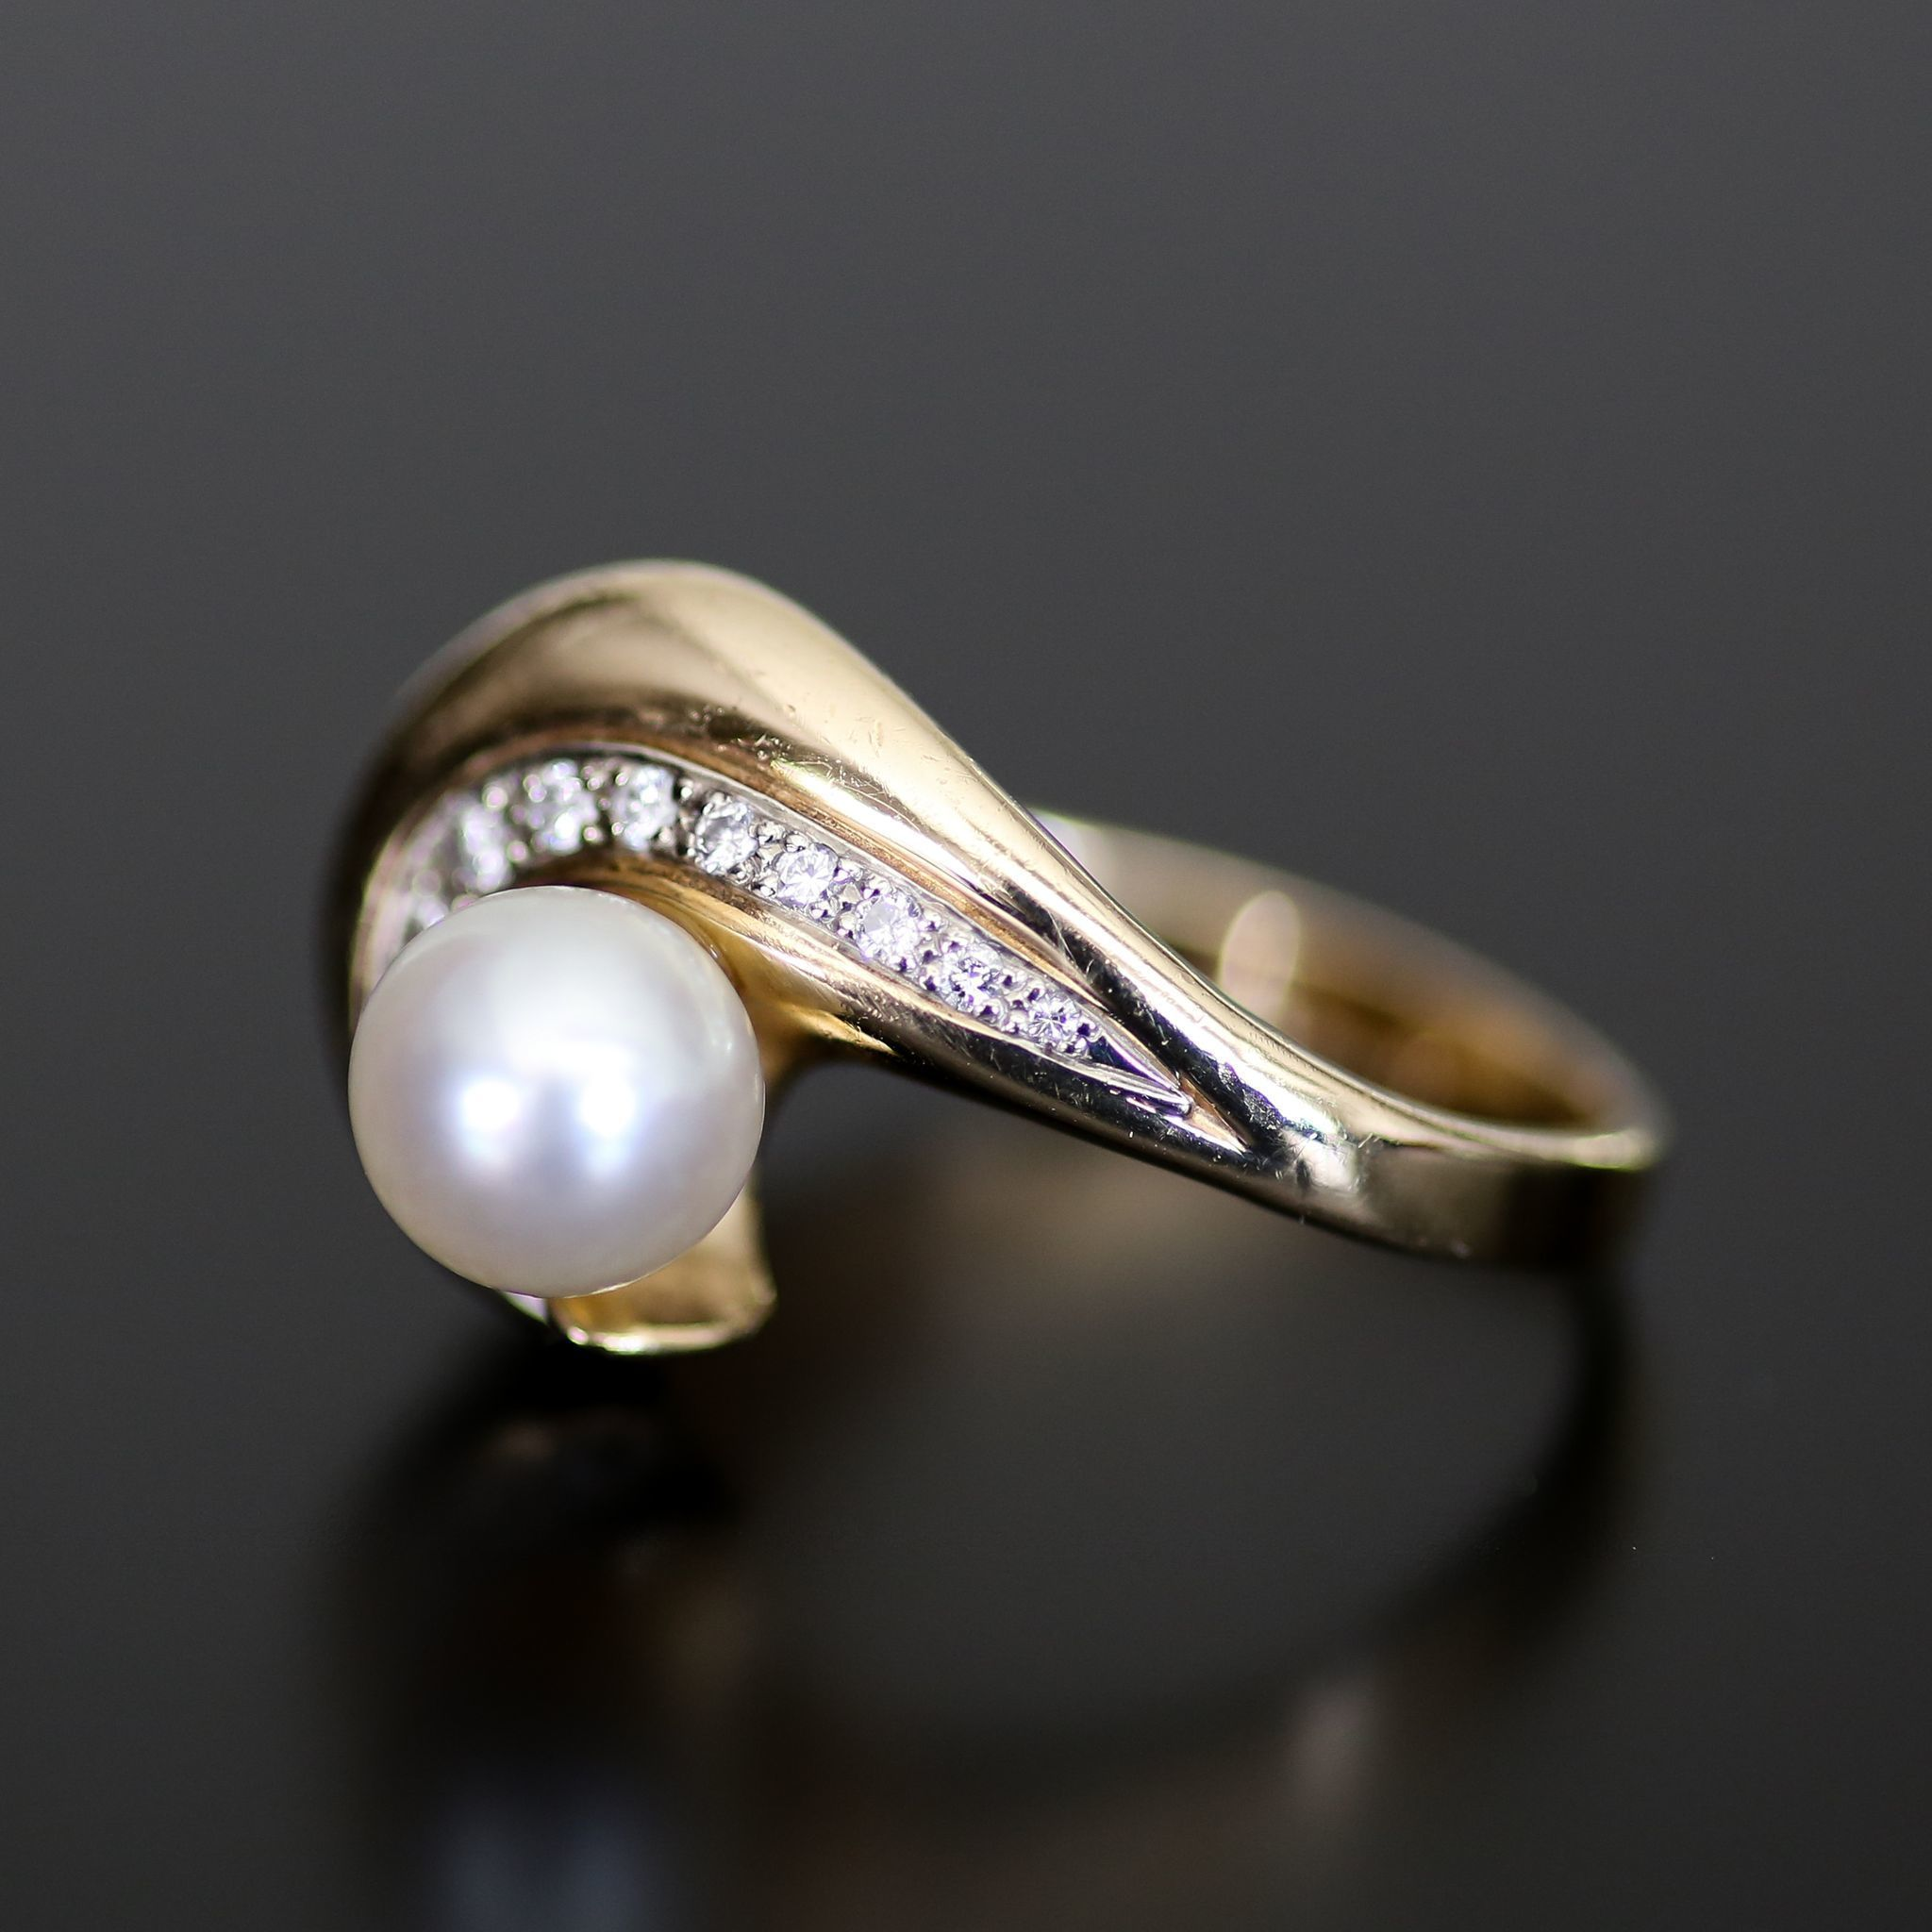 Vintage Lady's 14K Cultured Pearl and Diamond Ring